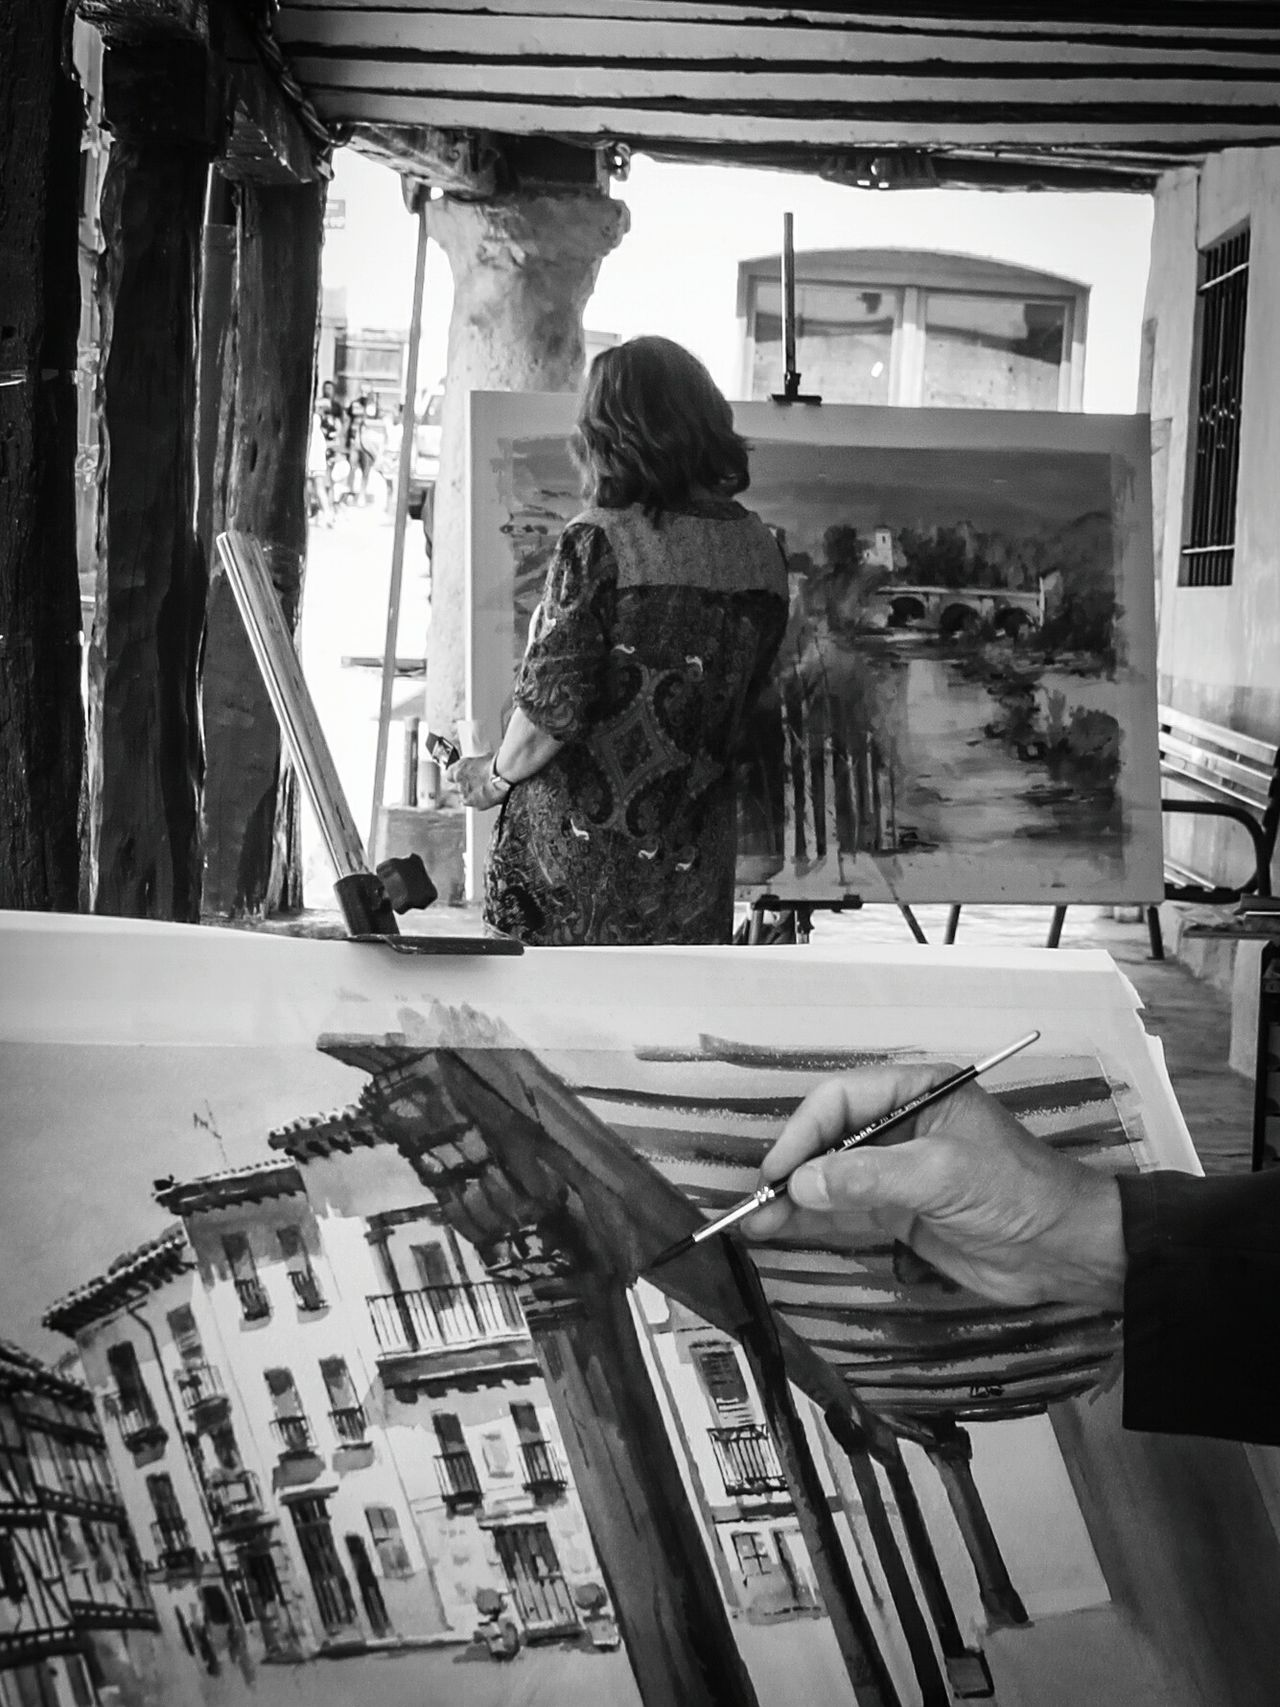 Building Exterior Rear View Casual Clothing Painters Painting Painter At Work Human Hand Part Of Body Covarrubias Pinturarapida Painting In Progress In The Street Rural Village Person Streetphotography Street Art Black And White Bnw_collection Bnw_captures Blackandwhite EyeEm Gallery Check This Out